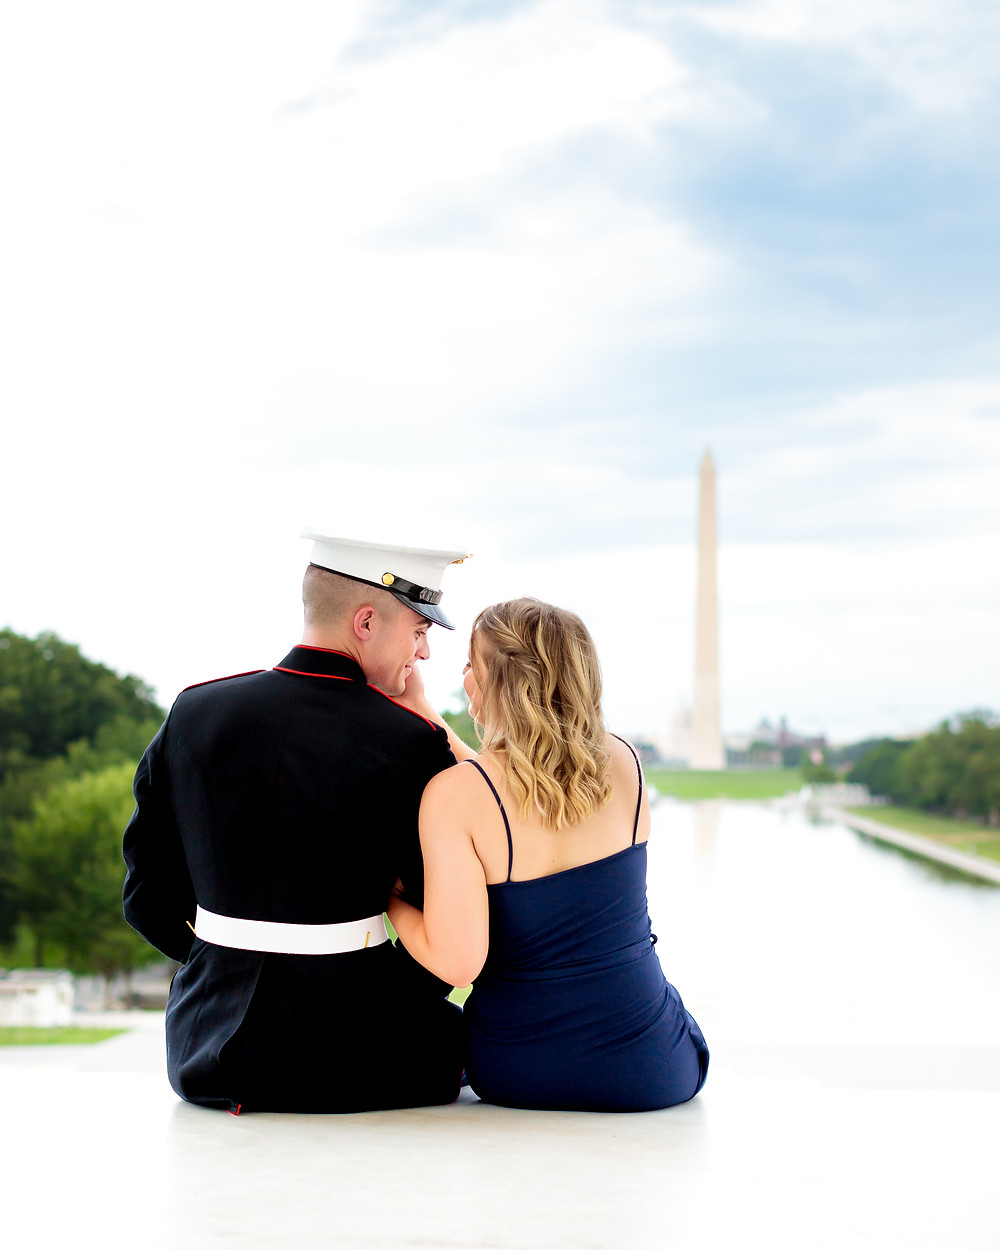 Marine engagement photoshoot at the Lincoln Memorial in Washington, DC